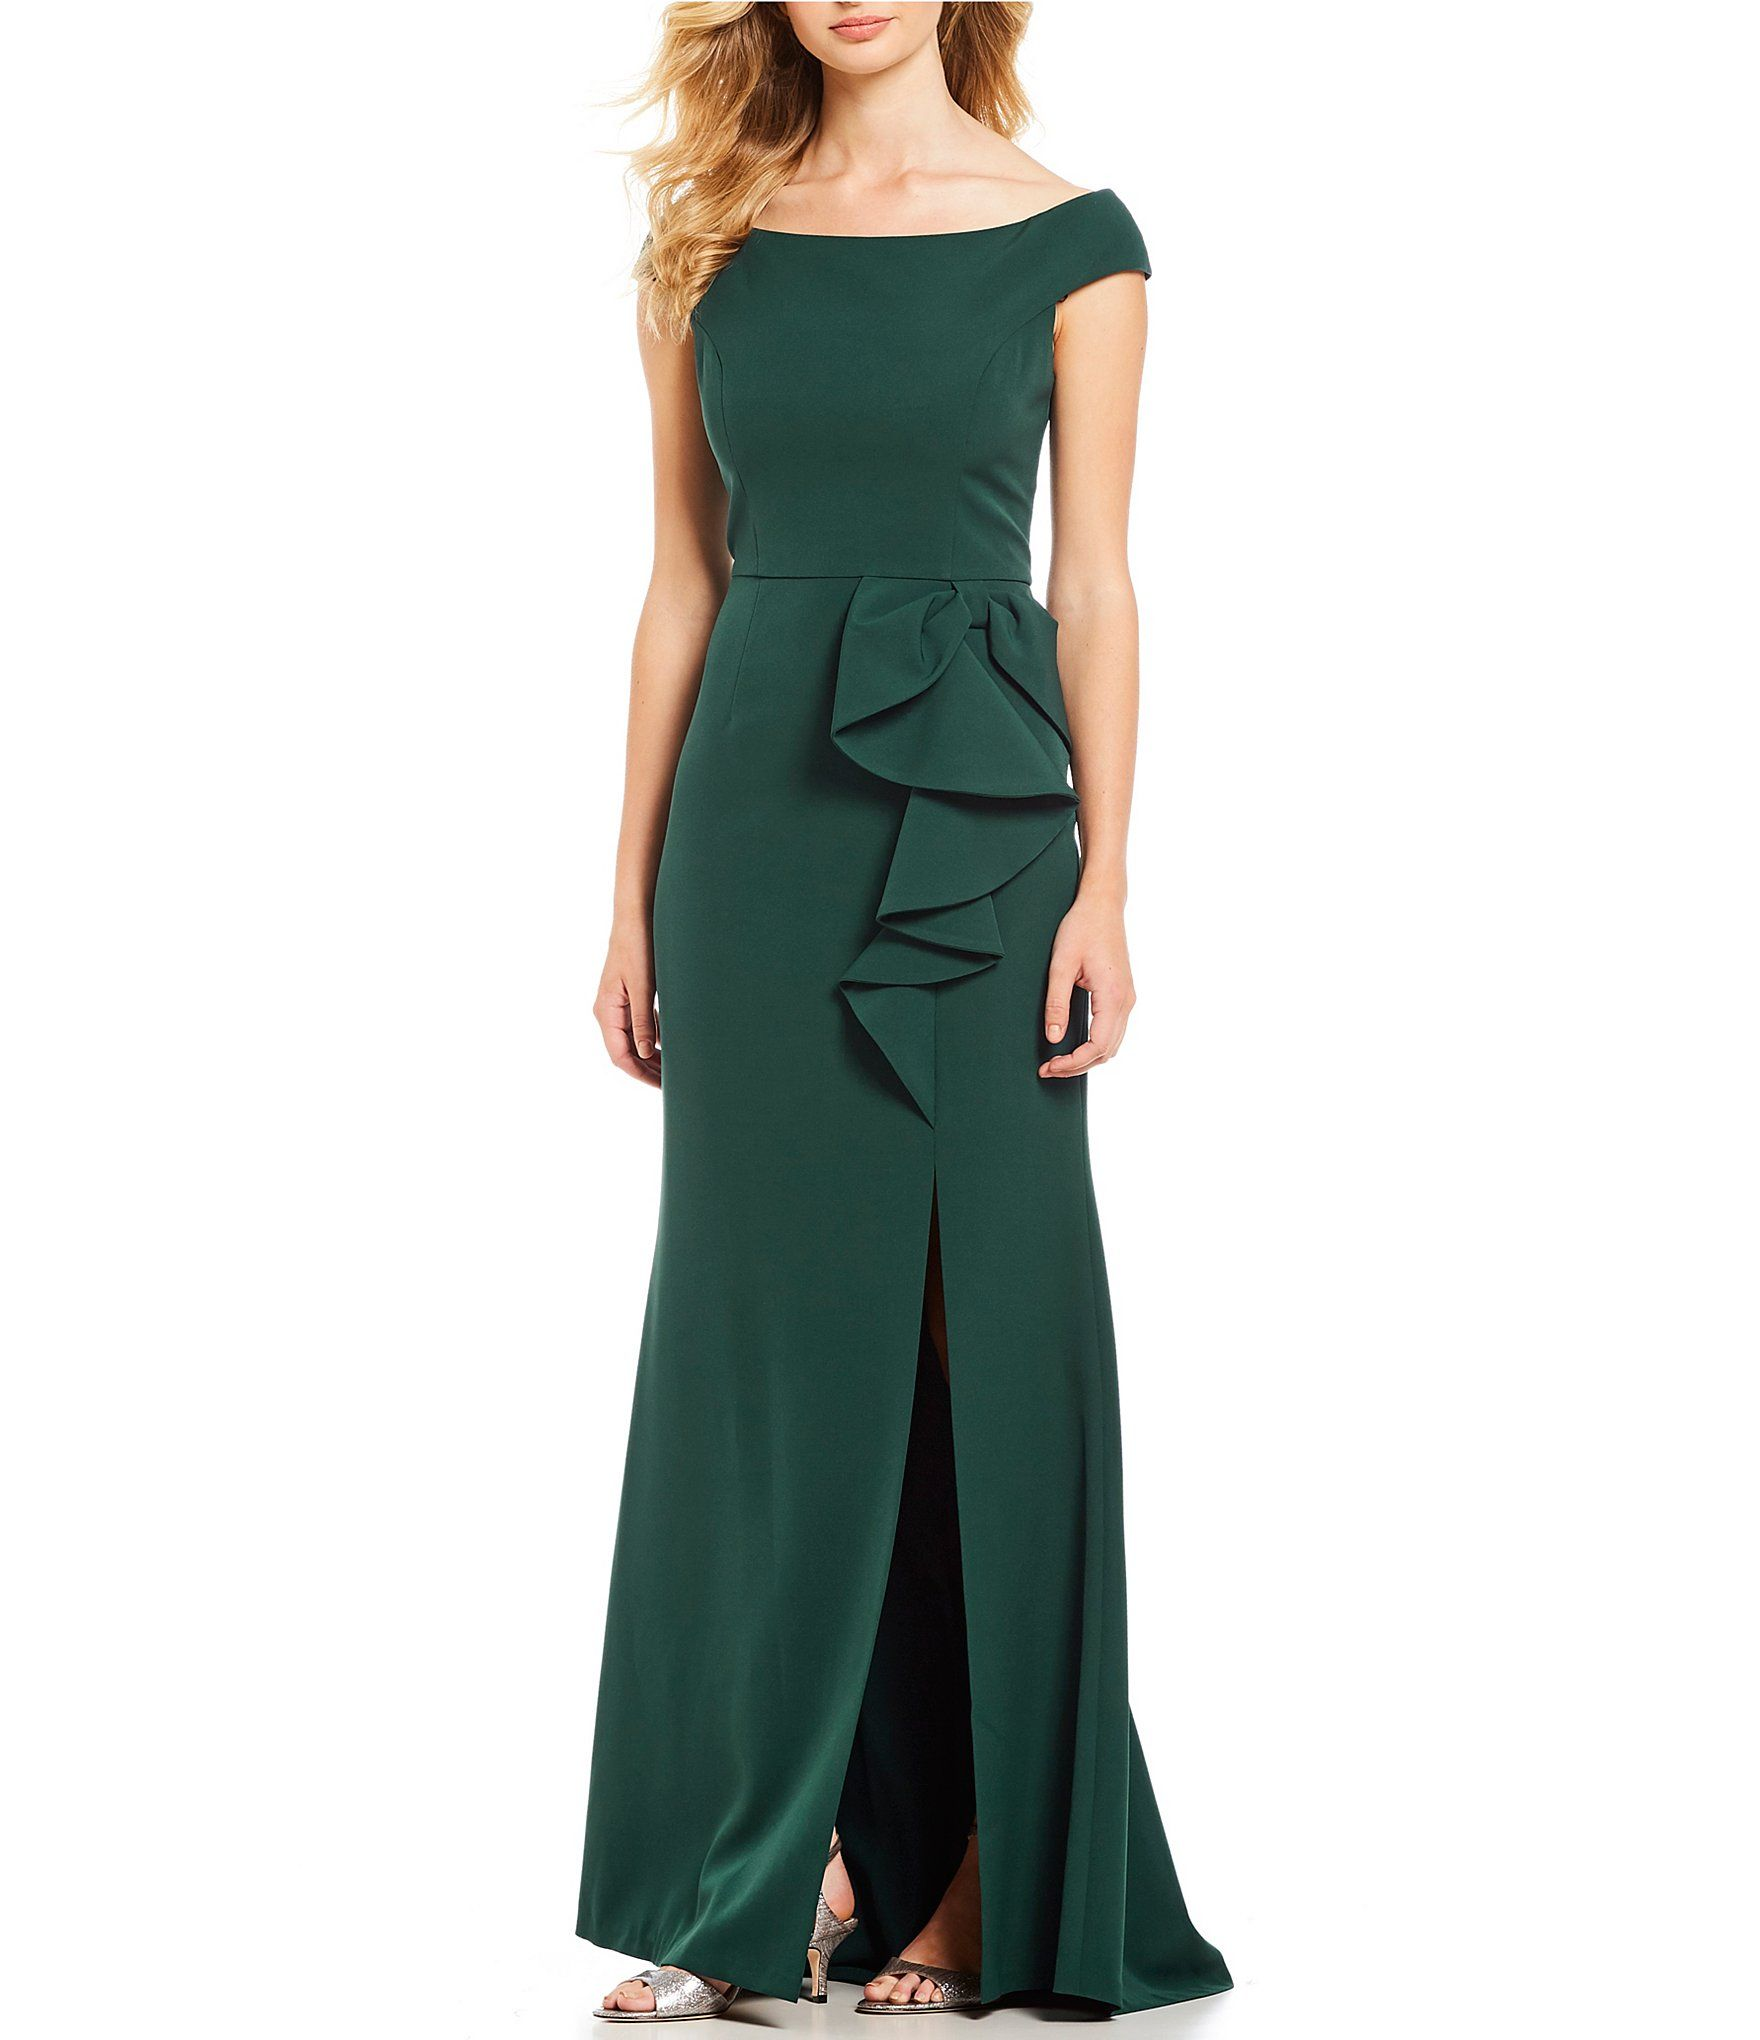 7f6450454f Vince Camuto OffTheShoulder Side Bow Gown  Dillards